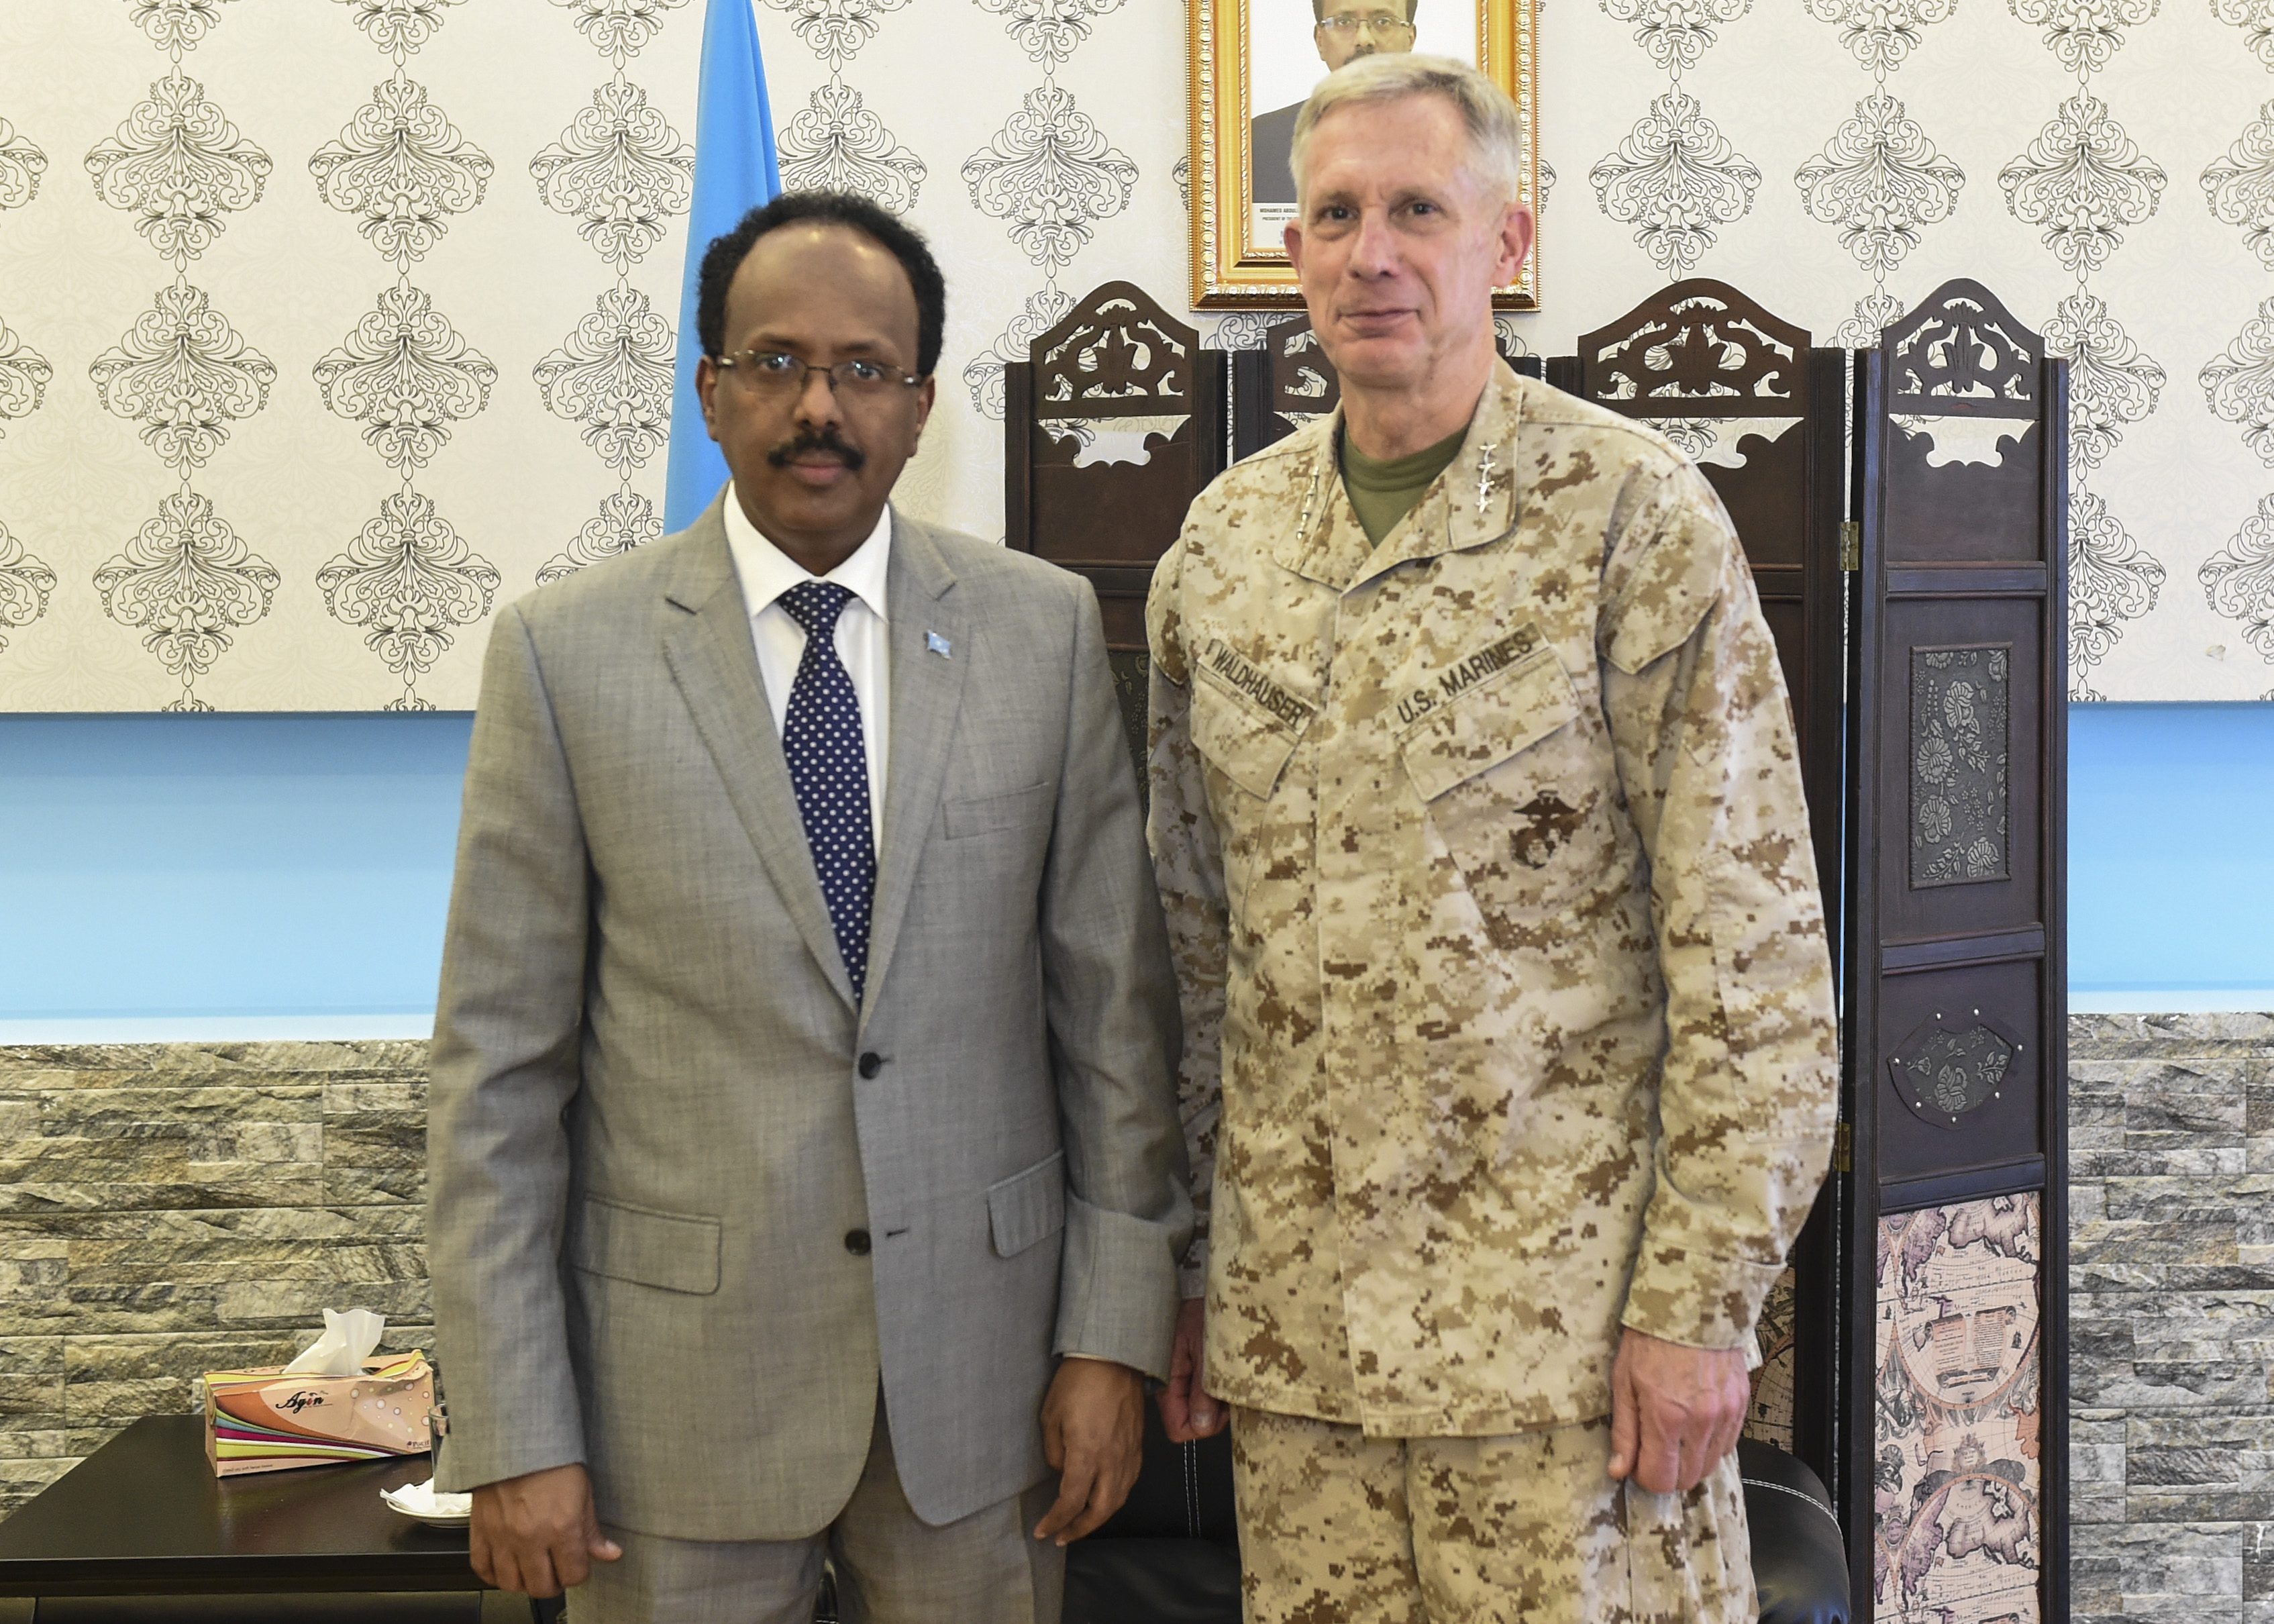 Somalia President Mohamed Abdullahi Mohamed and U.S. Marine Corps Gen. Thomas Waldhauser, U.S. Africa Command commander, pose for a photo in Mogadishu, Somalia, Oct. 12, 2017. Waldhauser and Martin Dale, the Chargé d'Affaires of the U.S. Mission to Somalia, along with other senior U.S. military and Department of State leaders, visited Somalia to engage with key Somalia stakeholders and express the U.S. government's commitment to the security and stability of the Federal Government of Somalia, Somali National Security Forces, and the African Union Mission in Somalia. (U.S. Air Force photo by Staff Sgt. Eboni Prince)